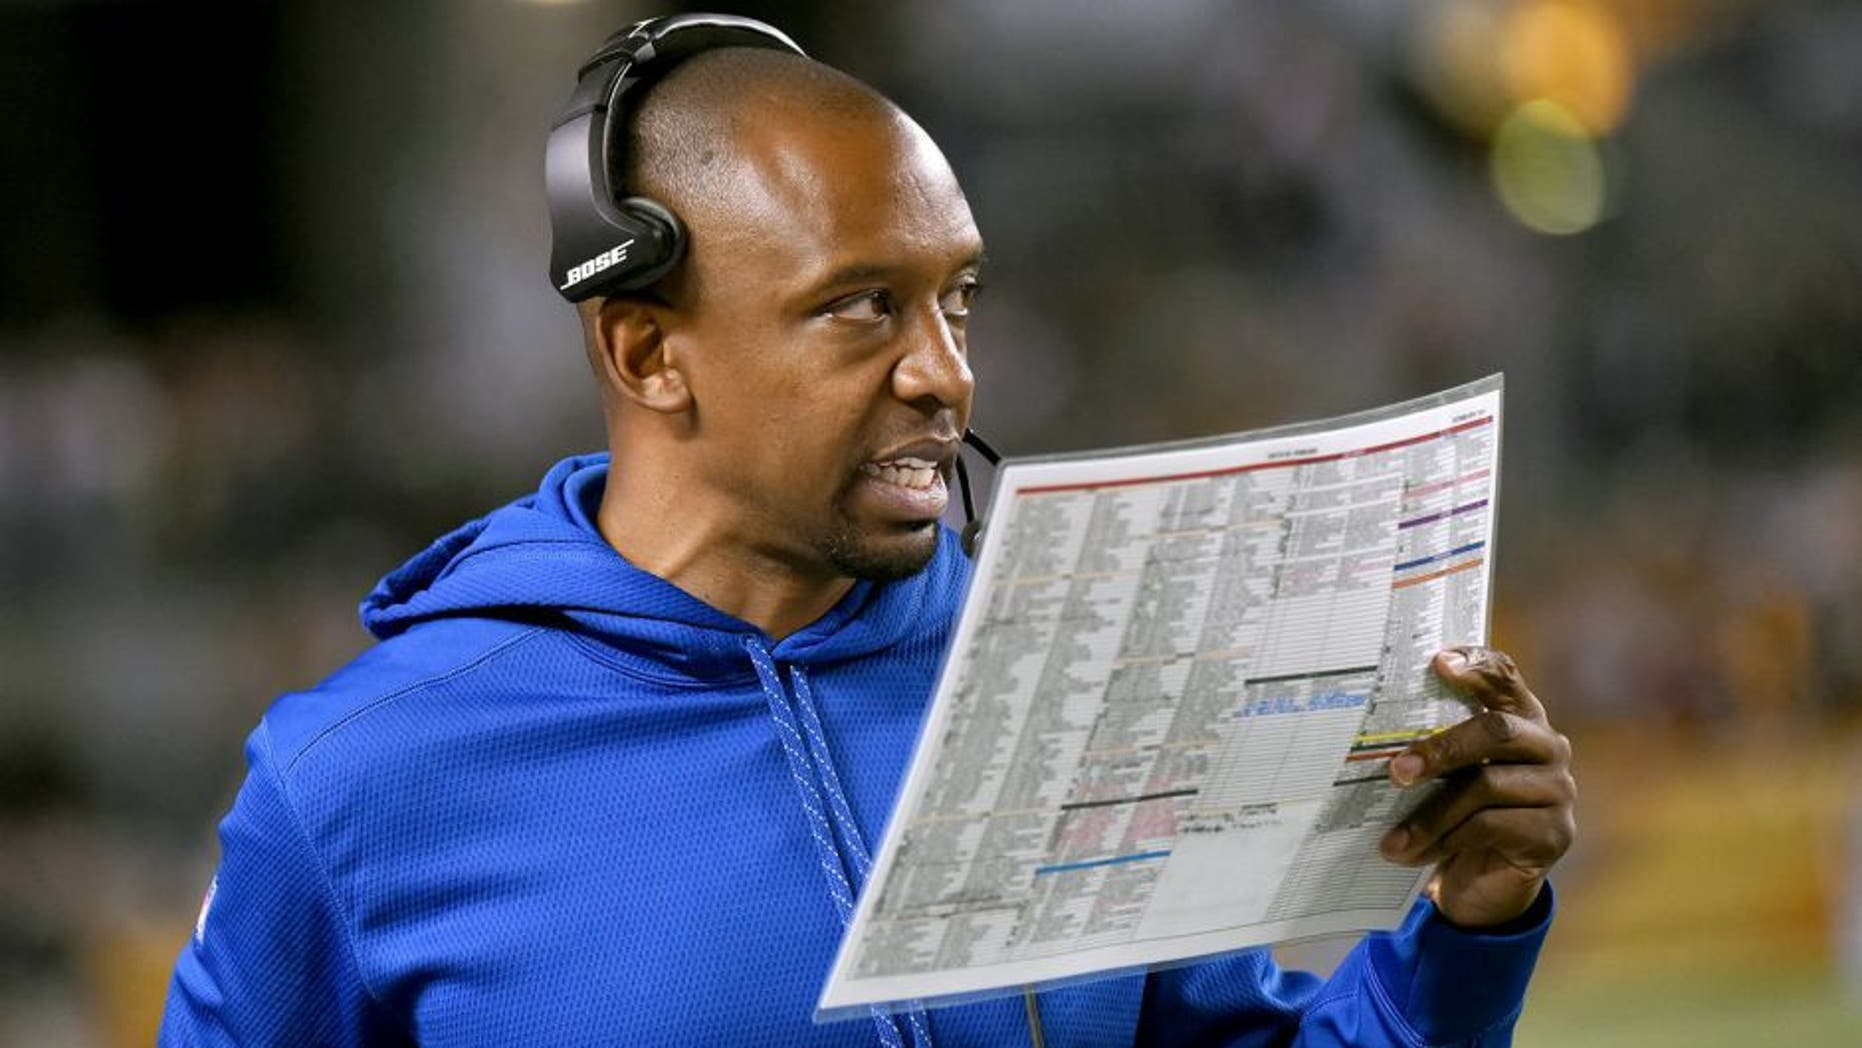 PITTSBURGH, PA - OCTOBER 26: Offensive coordinator Pep Hamilton of the Indianapolis Colts looks on from the sideline during a game against the Pittsburgh Steelers at Heinz Field on October 26, 2014 in Pittsburgh, Pennsylvania. The Steelers defeated the Colts 51-34. (Photo by George Gojkovich/Getty Images)